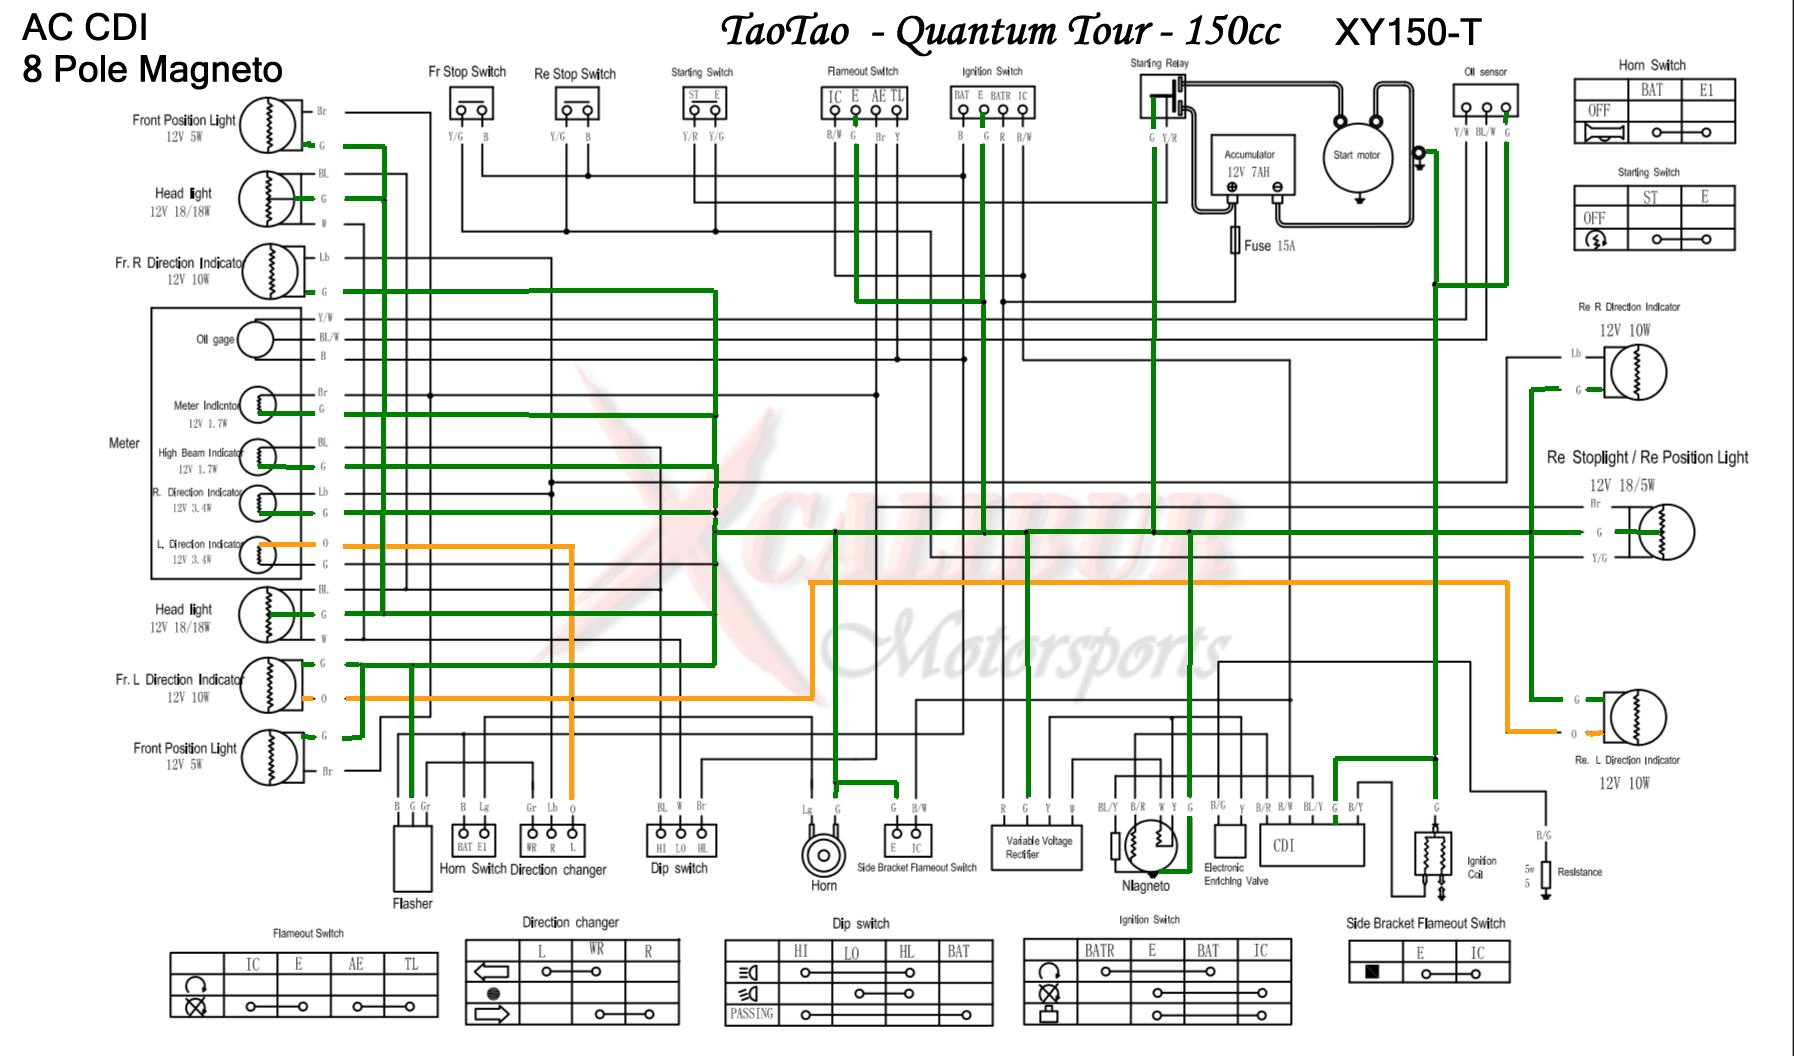 2010 Tao Tao 150 Atv Wire Diagram | Wiring Diagram - Taotao 125 Atv Wiring Diagram